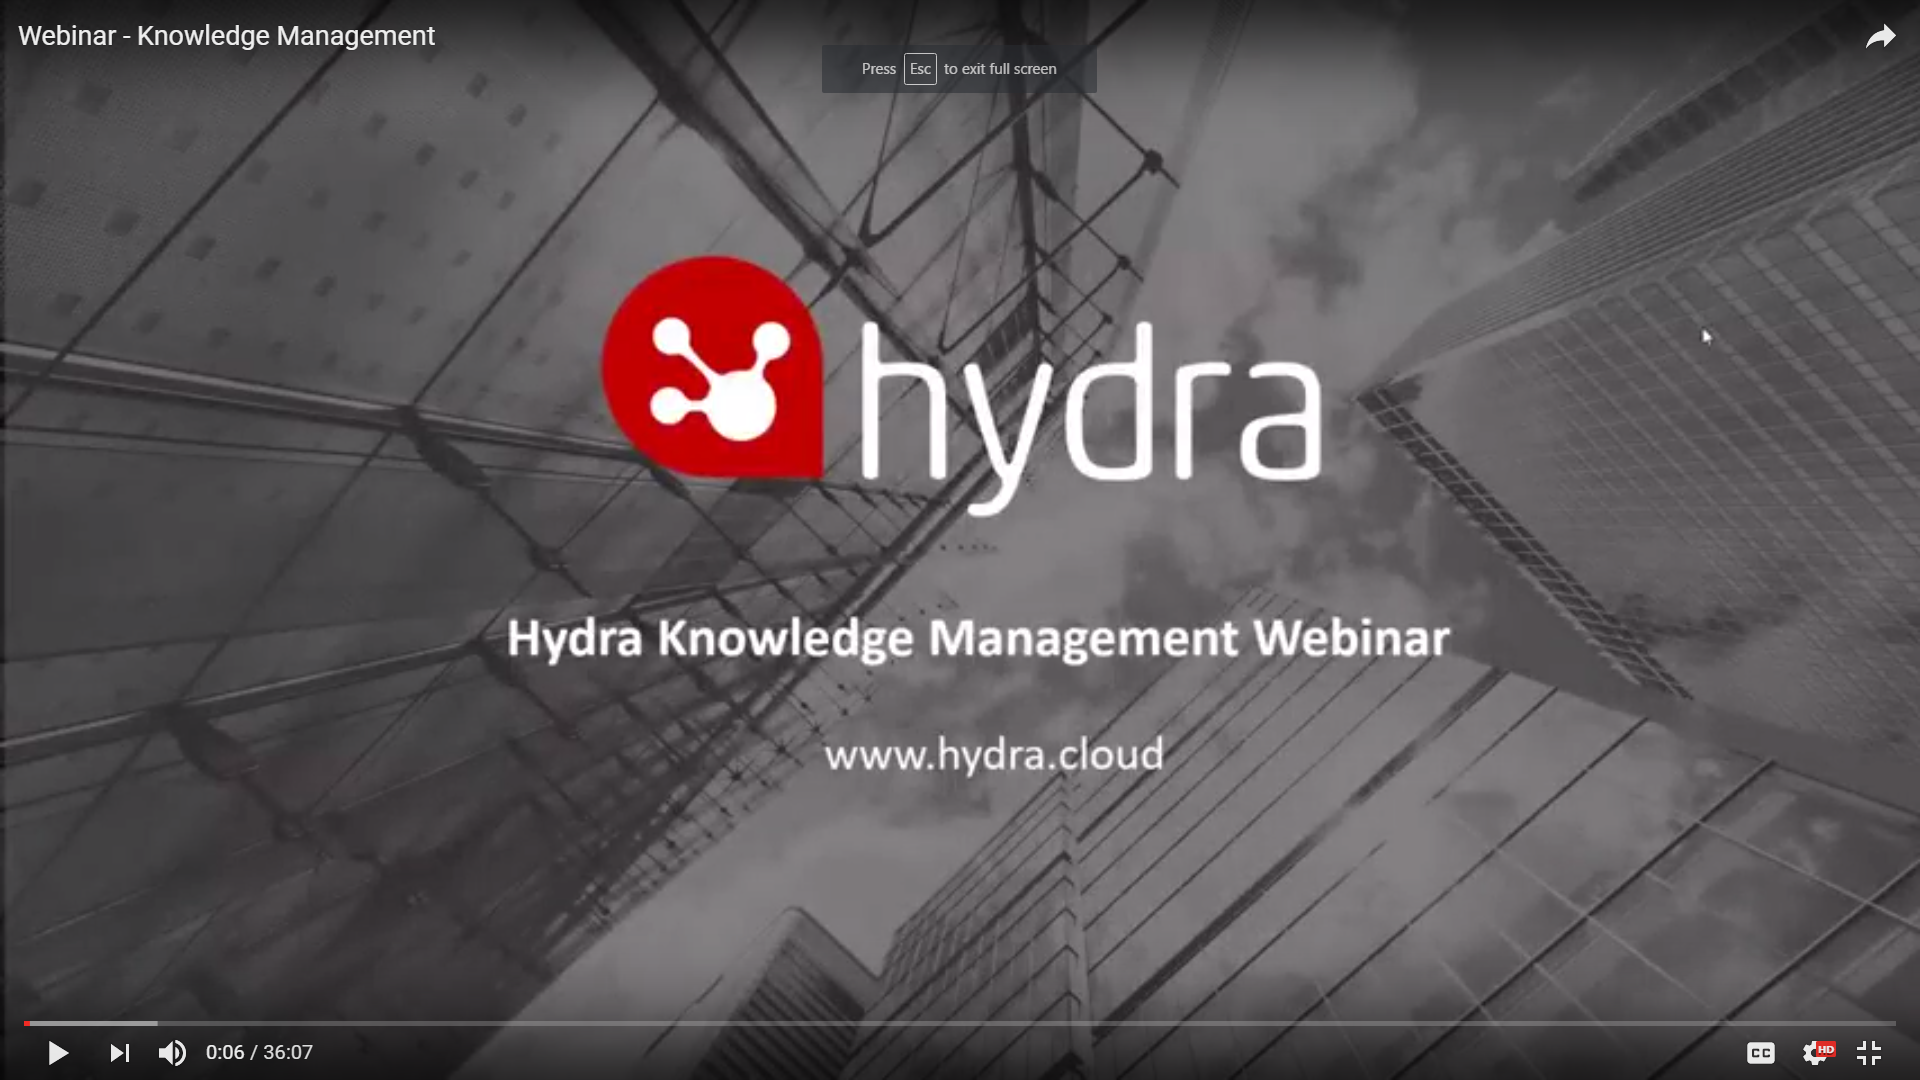 Knowledge Management Webinar